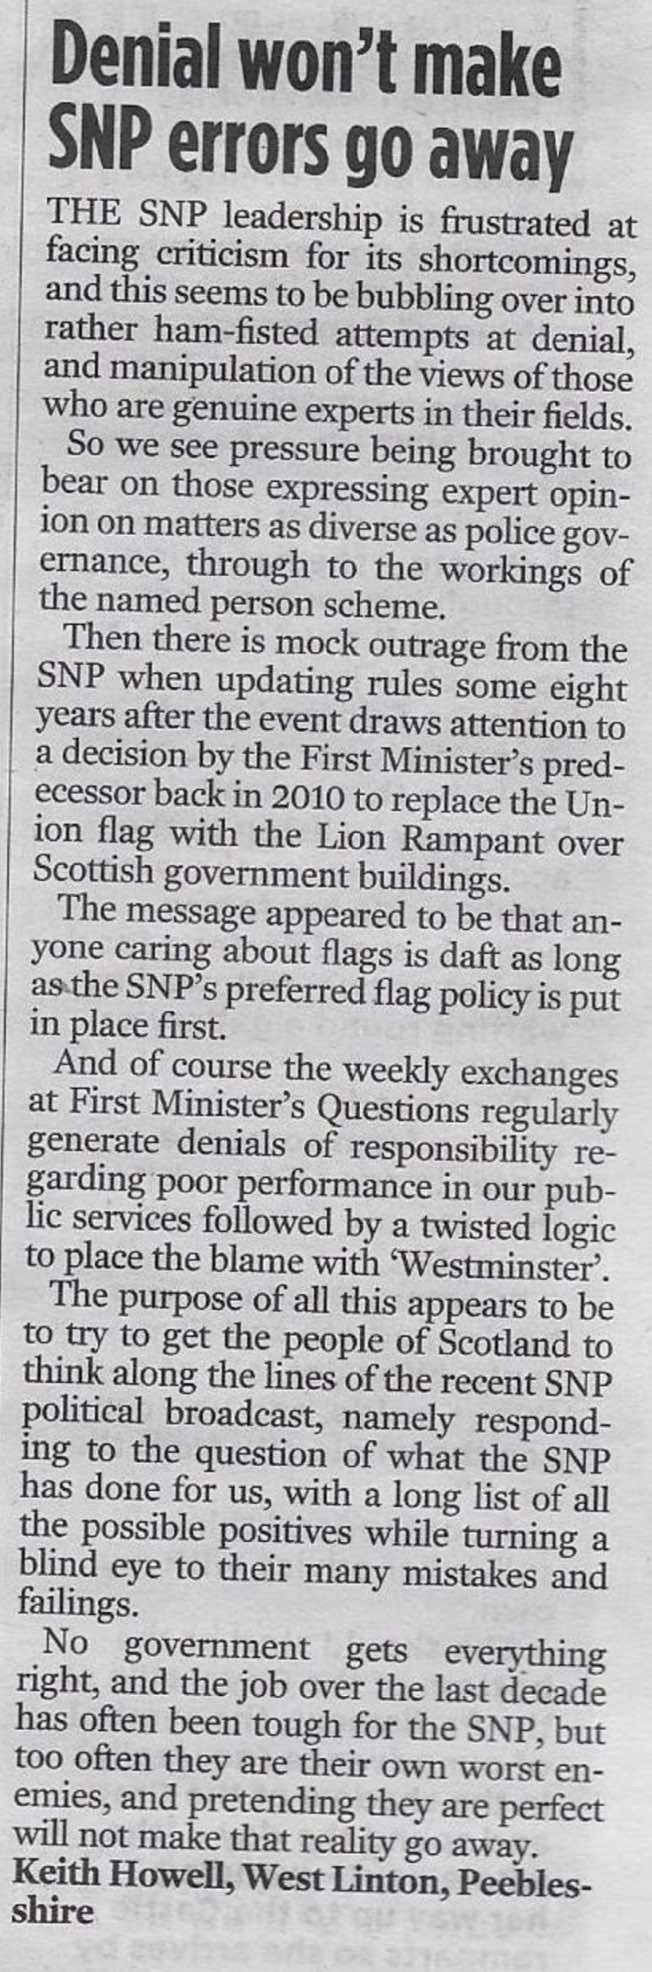 Denial won't make SNP errors go away